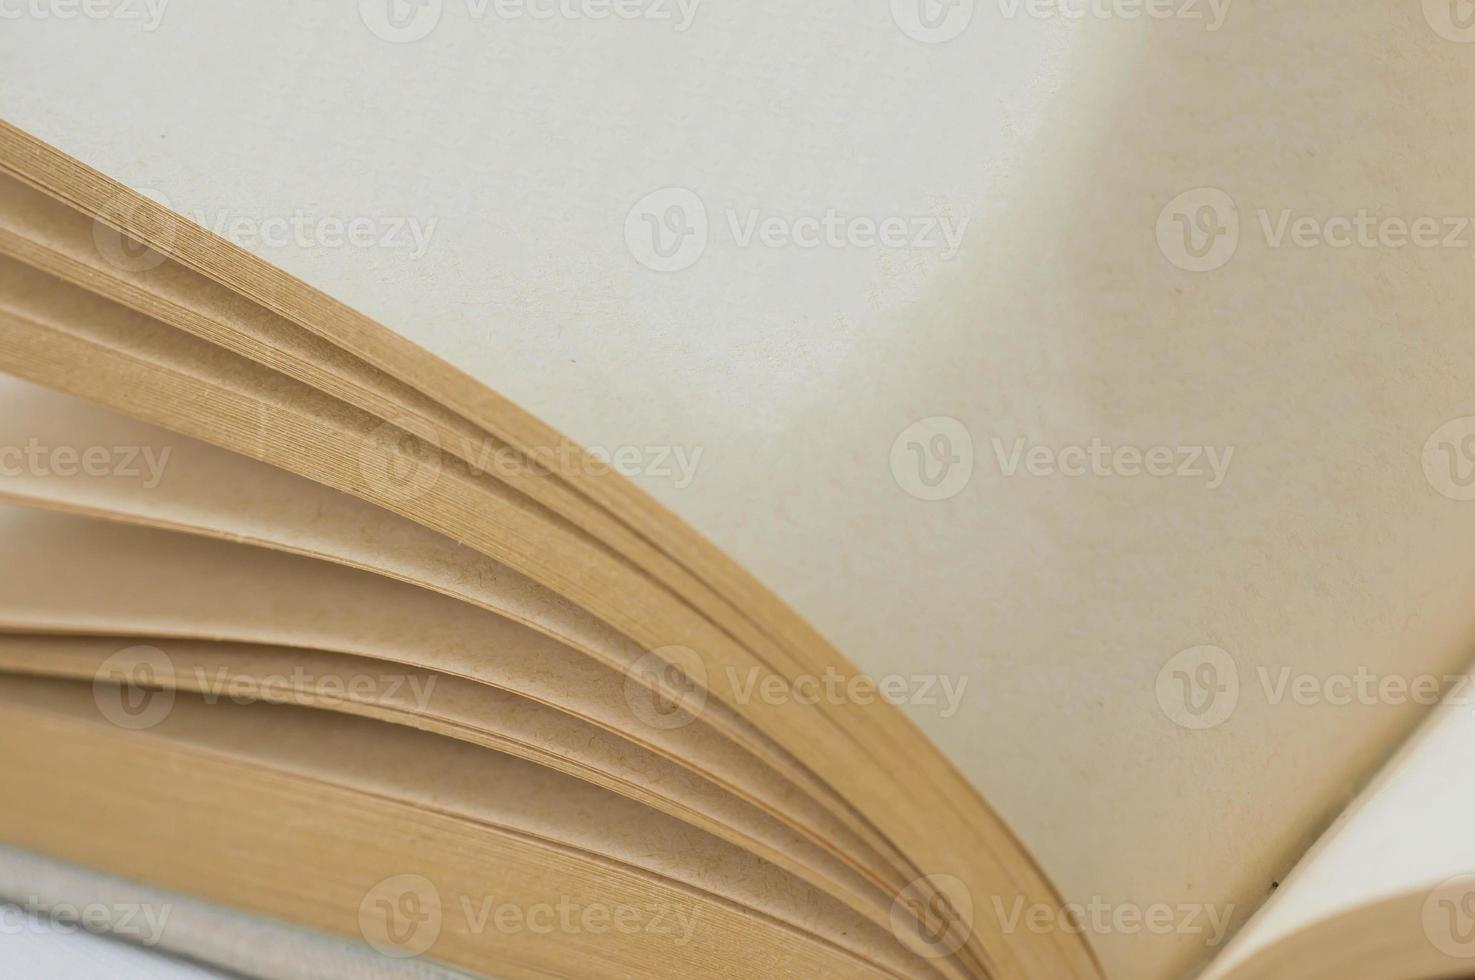 Book open to a blank page close up photo